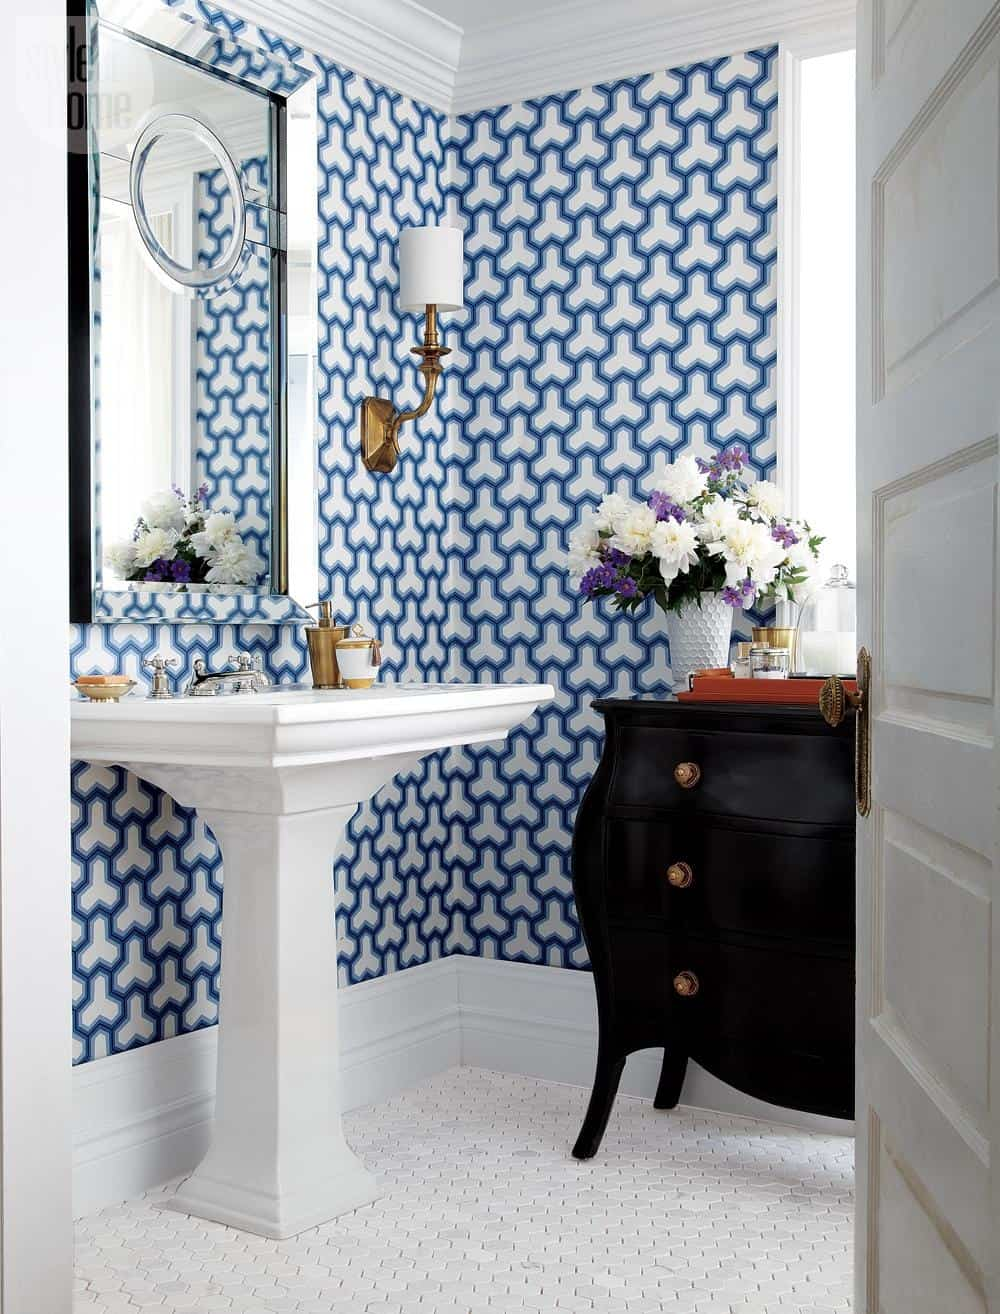 The Blue And White Wallpaper Design Brings On The Geometric In A Crisp,  Bold Look That Can Swing Both Traditional And Modern Depending On What Is  Paired ...